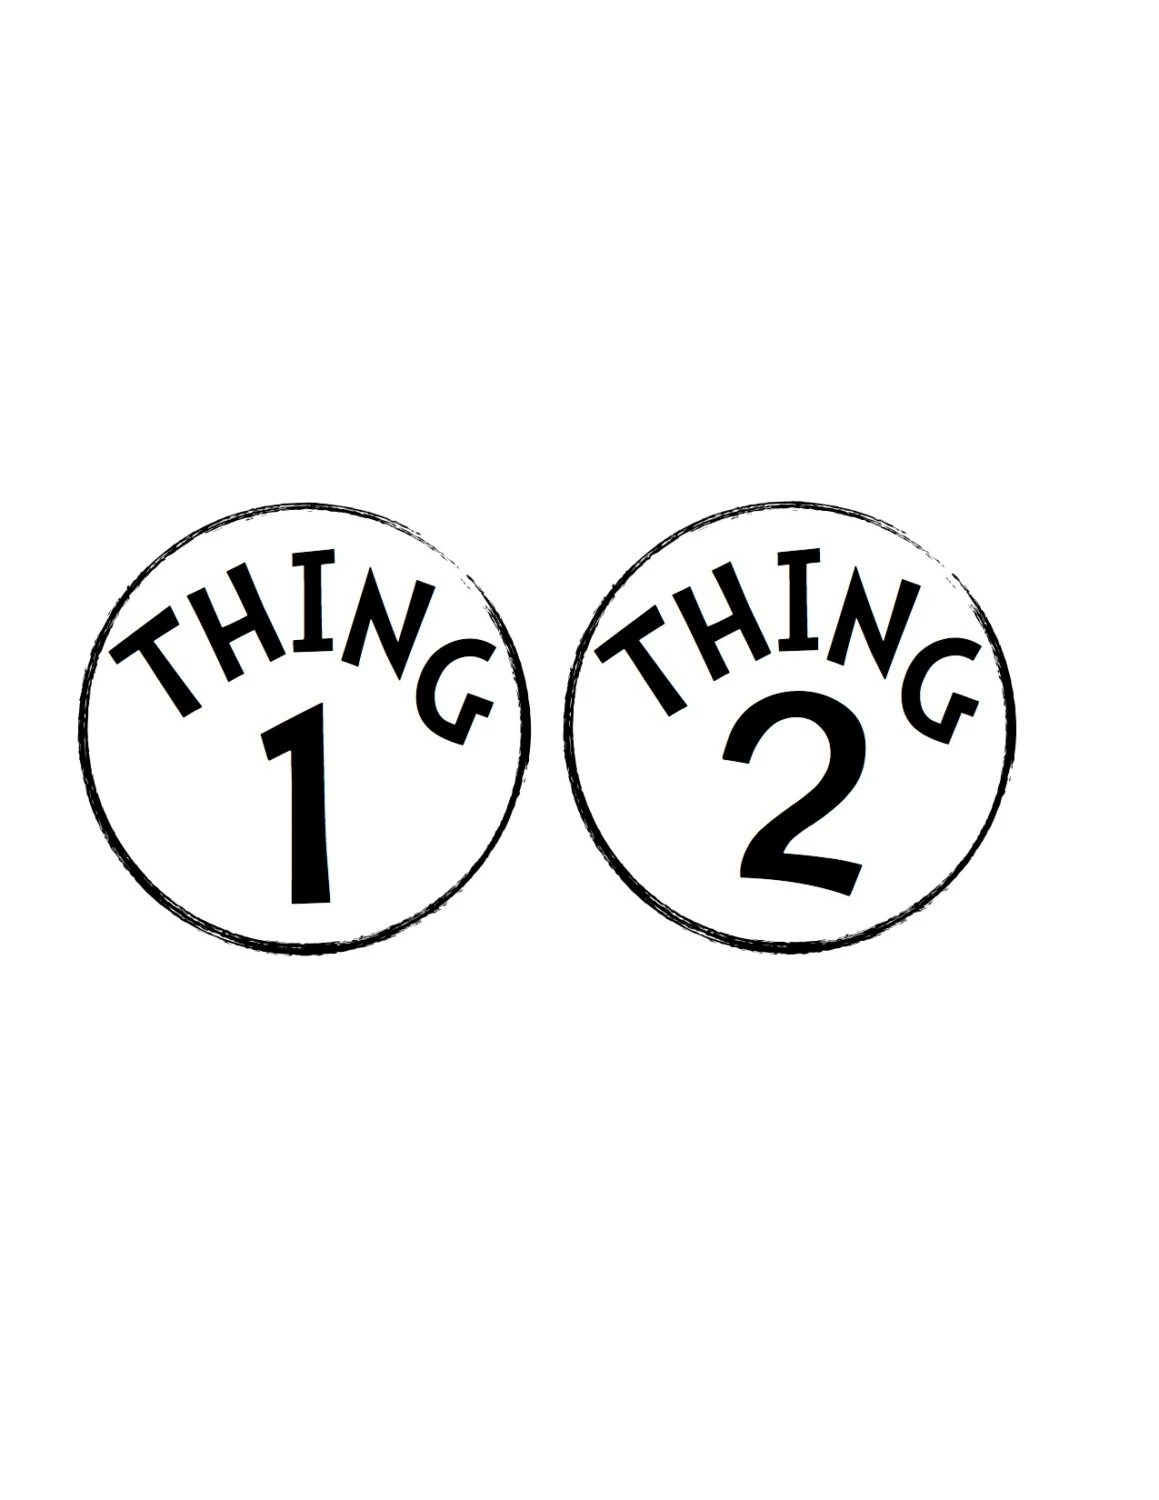 Thing 1 And Thing 2 Stickers Dr Seuss Theme By